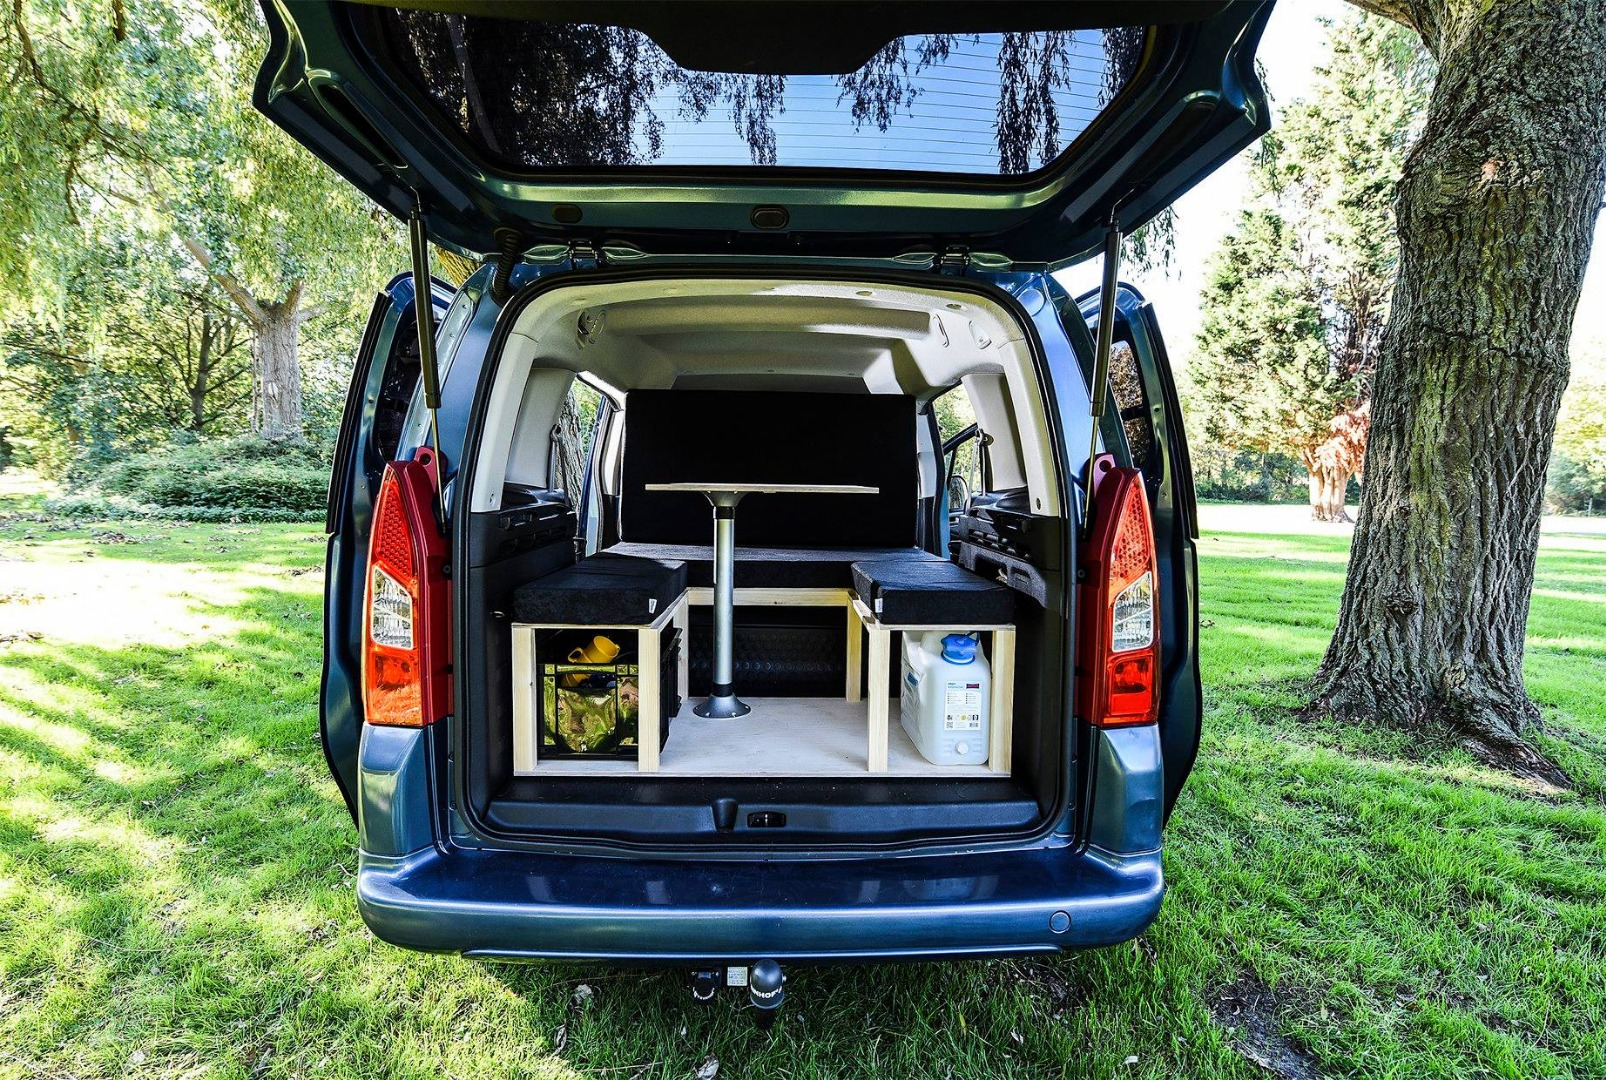 Simple kit turns small vans or crossovers into cozy micro campervans for under $750